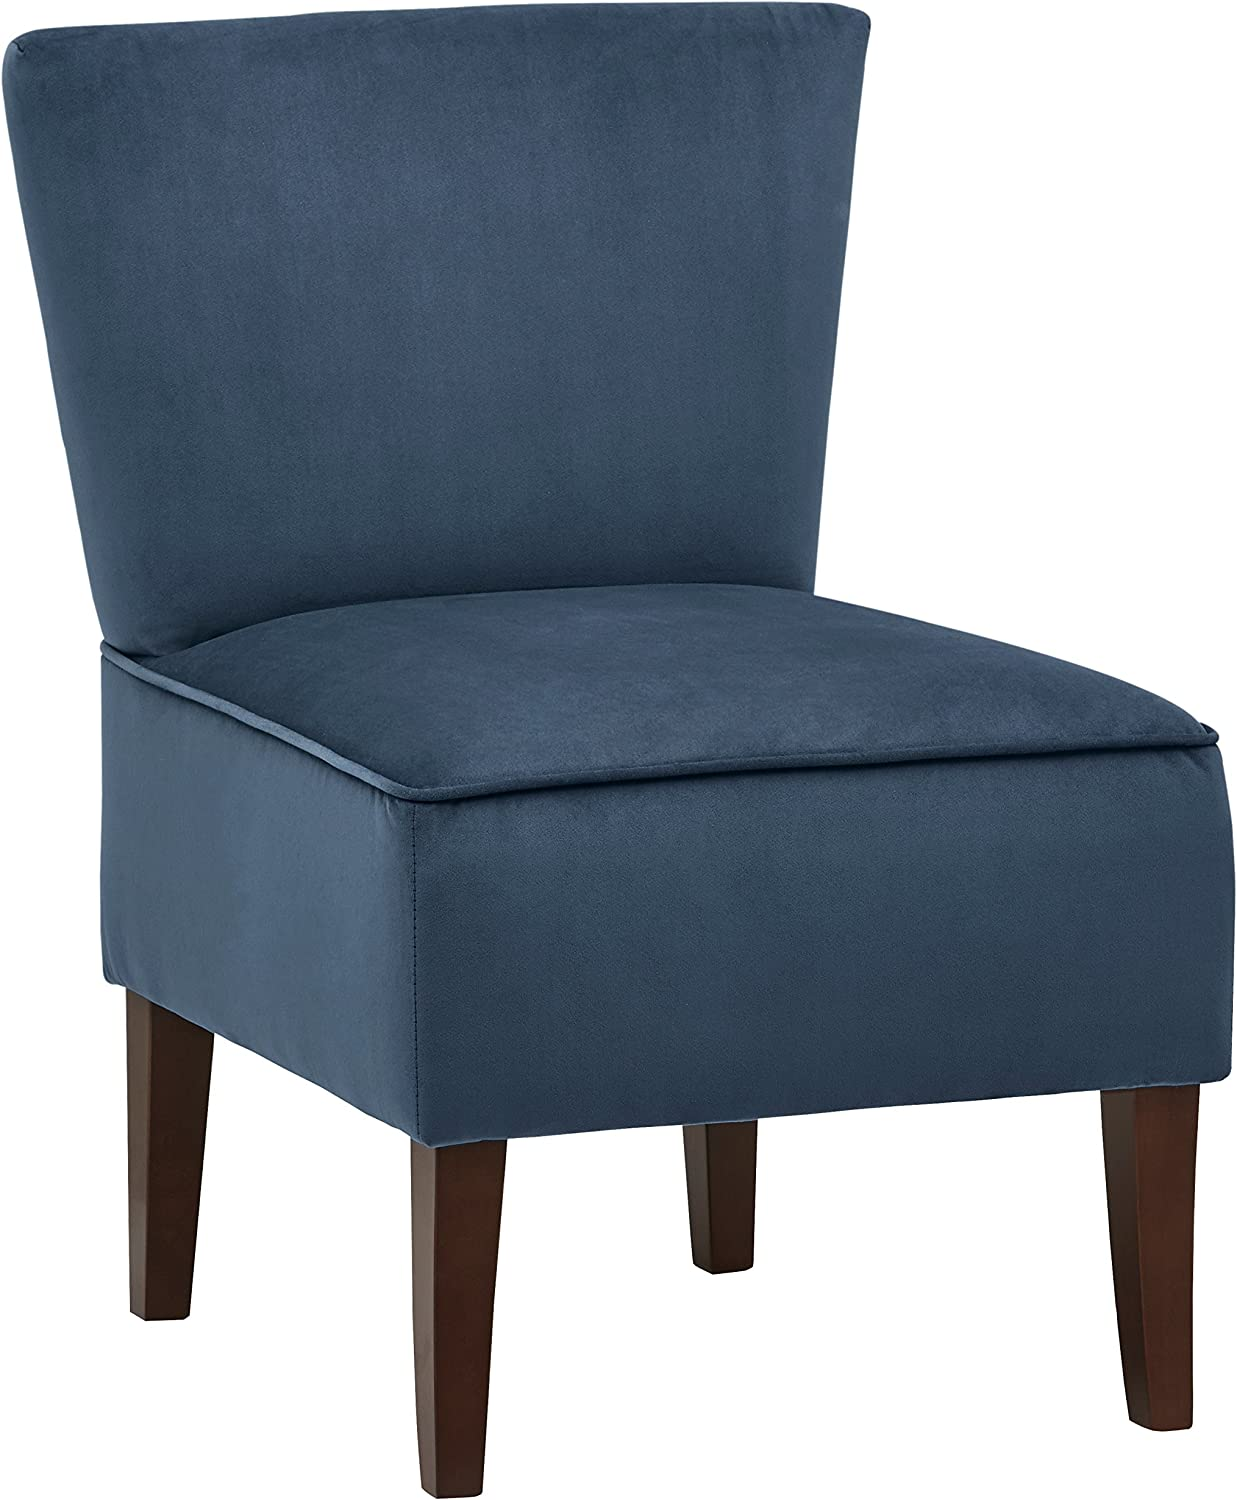 "Amazon Brand – Rivet Ashworth Armless Velvet Accent Chair, 21.6""W, Navy Navy"